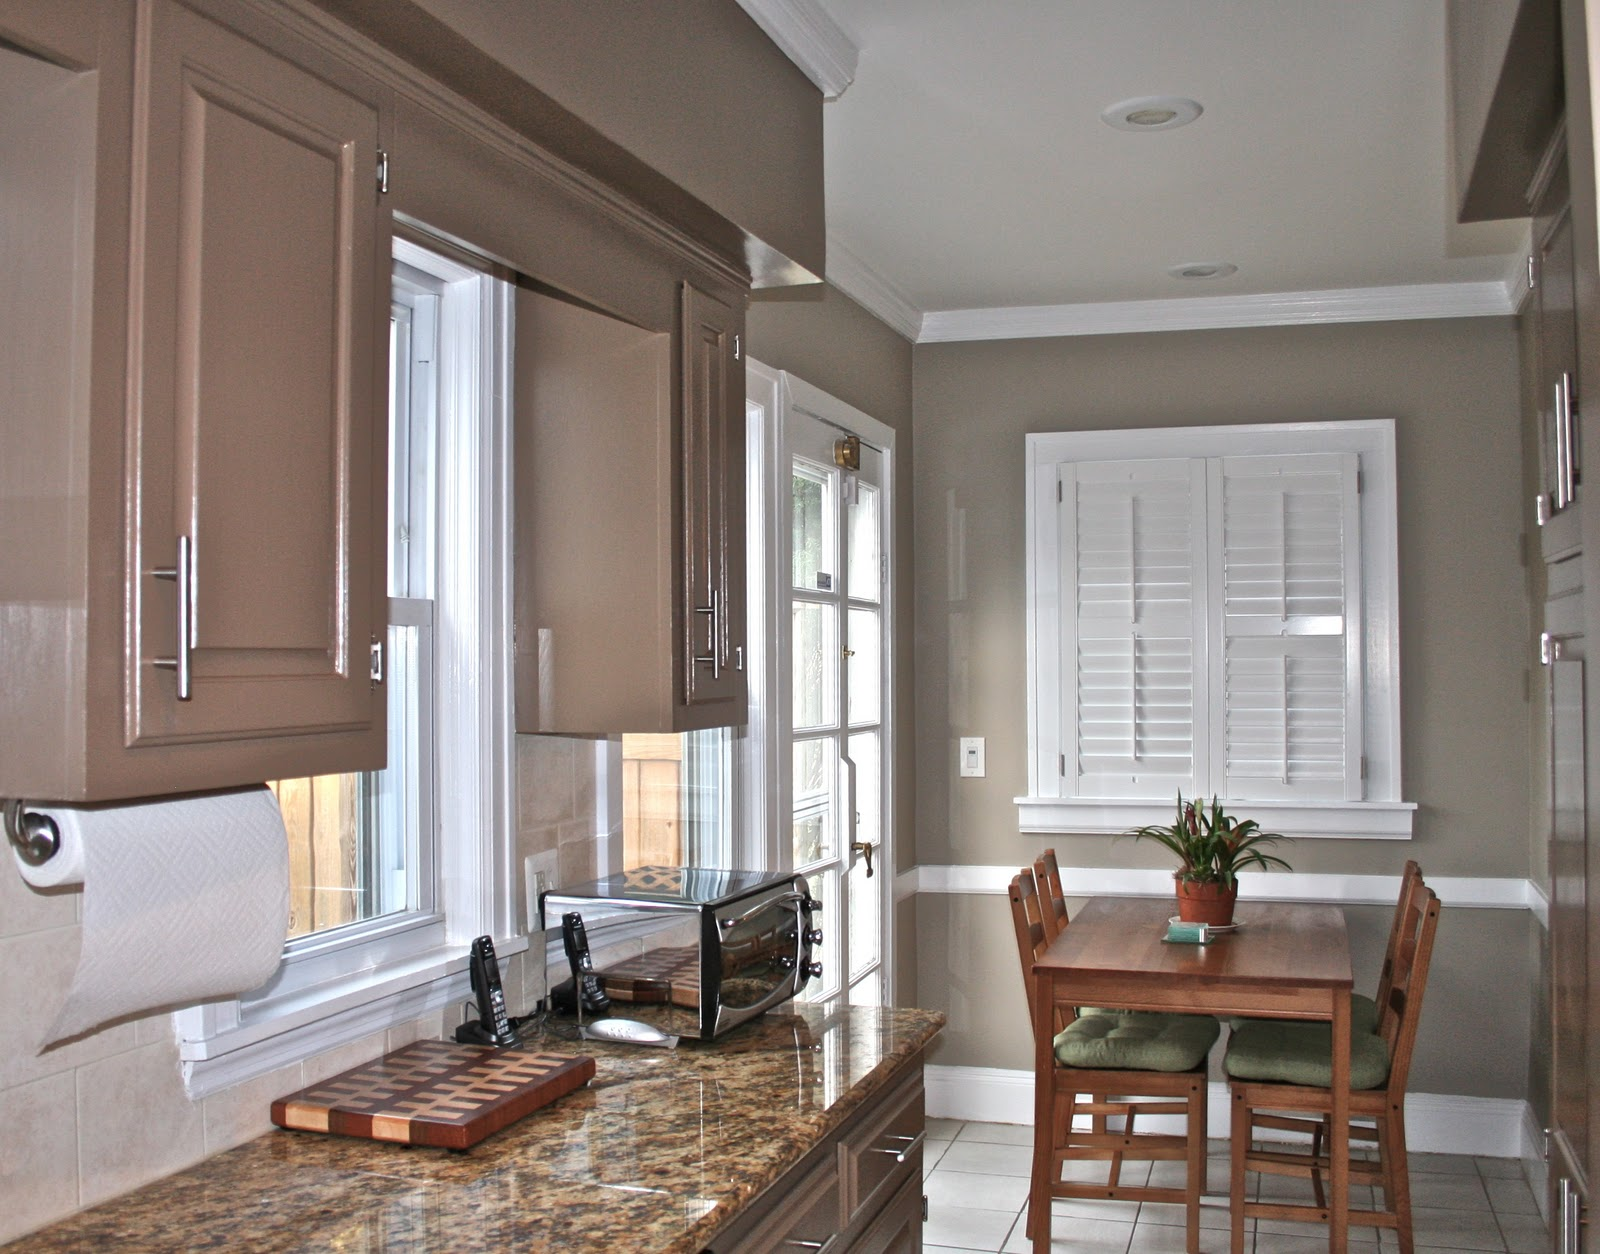 Best Kitchen Gallery: Color Forte Benjamin Moore Paint Color Consultation With Thunder Af 685 of Benjamin Moore Sea Haze Kitchen Cabinets on rachelxblog.com